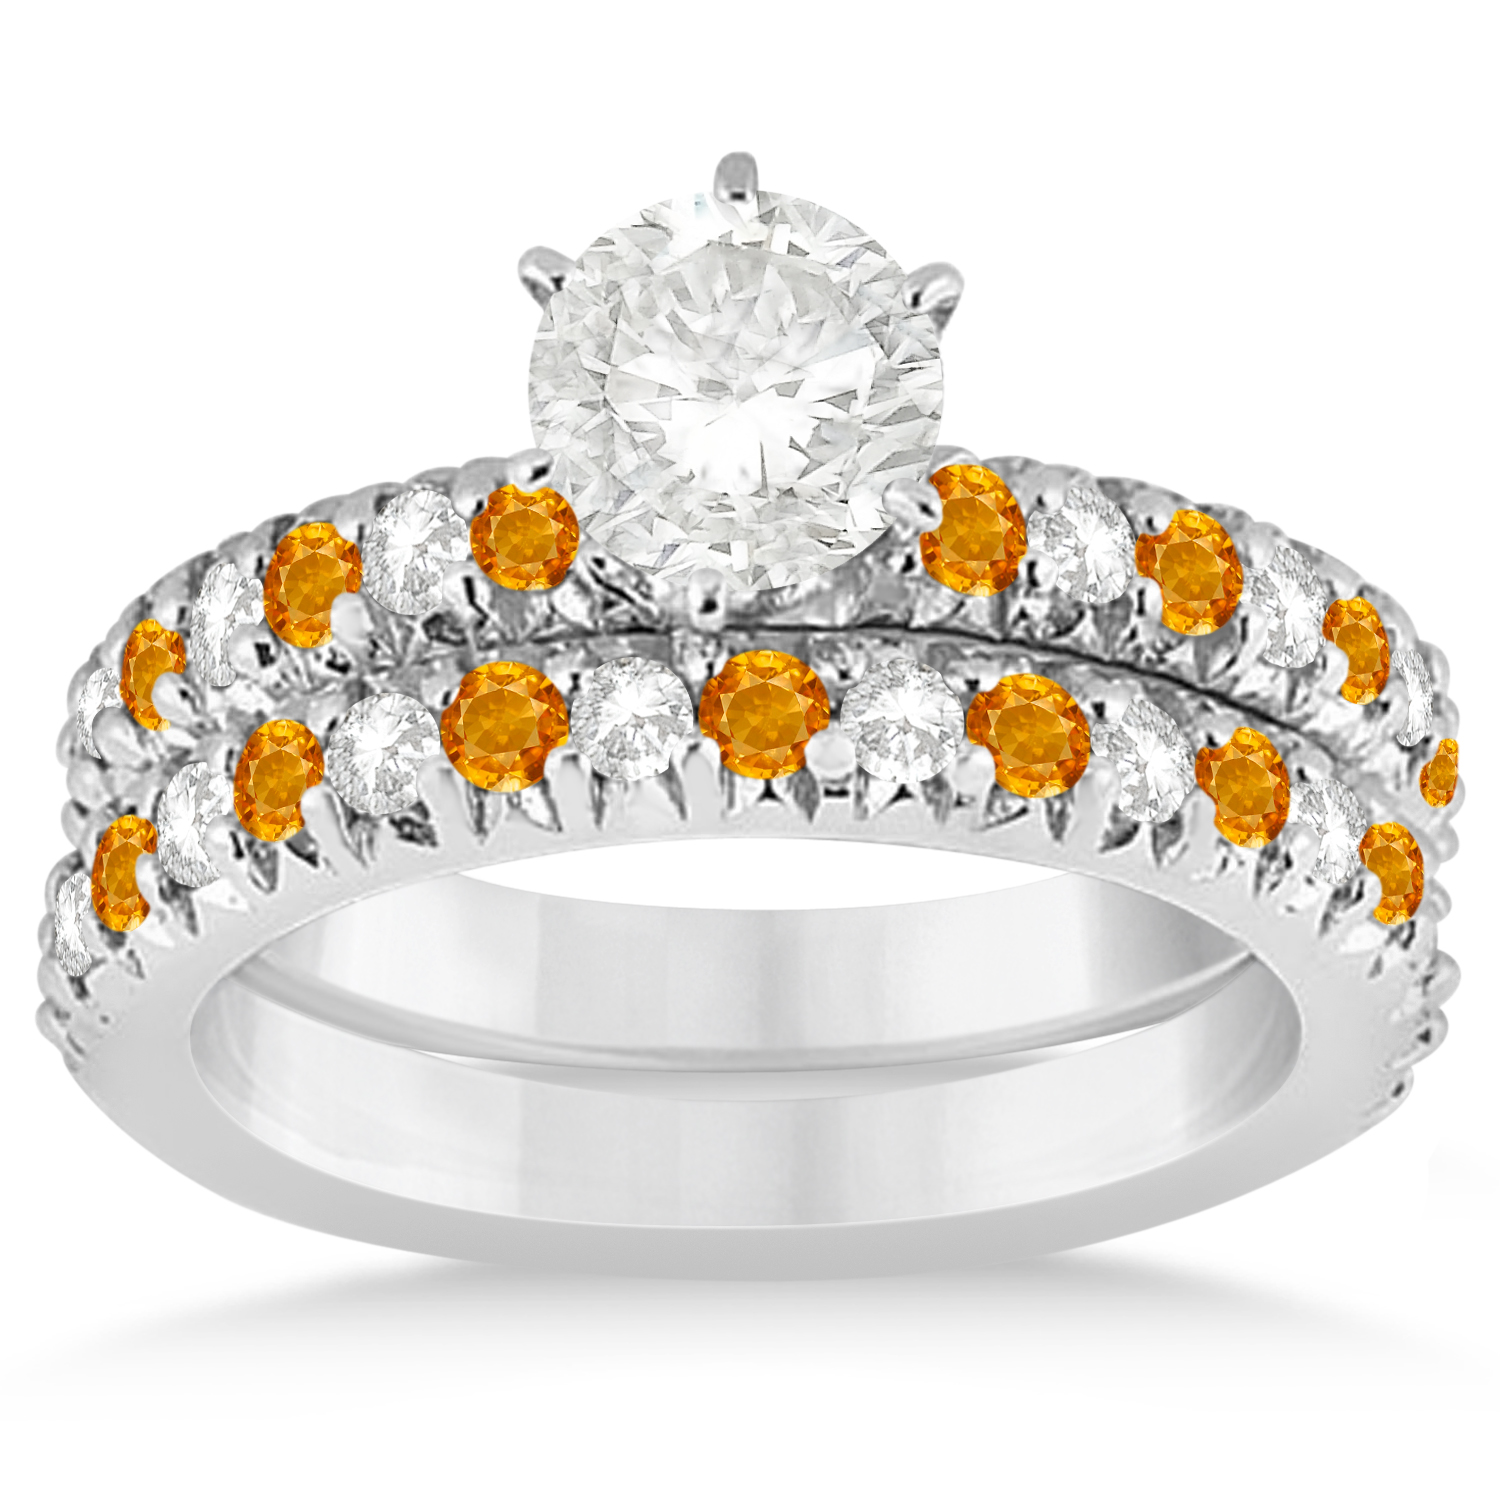 Citrine and Diamond Accented Bridal Set 18k White Gold 1.14ct